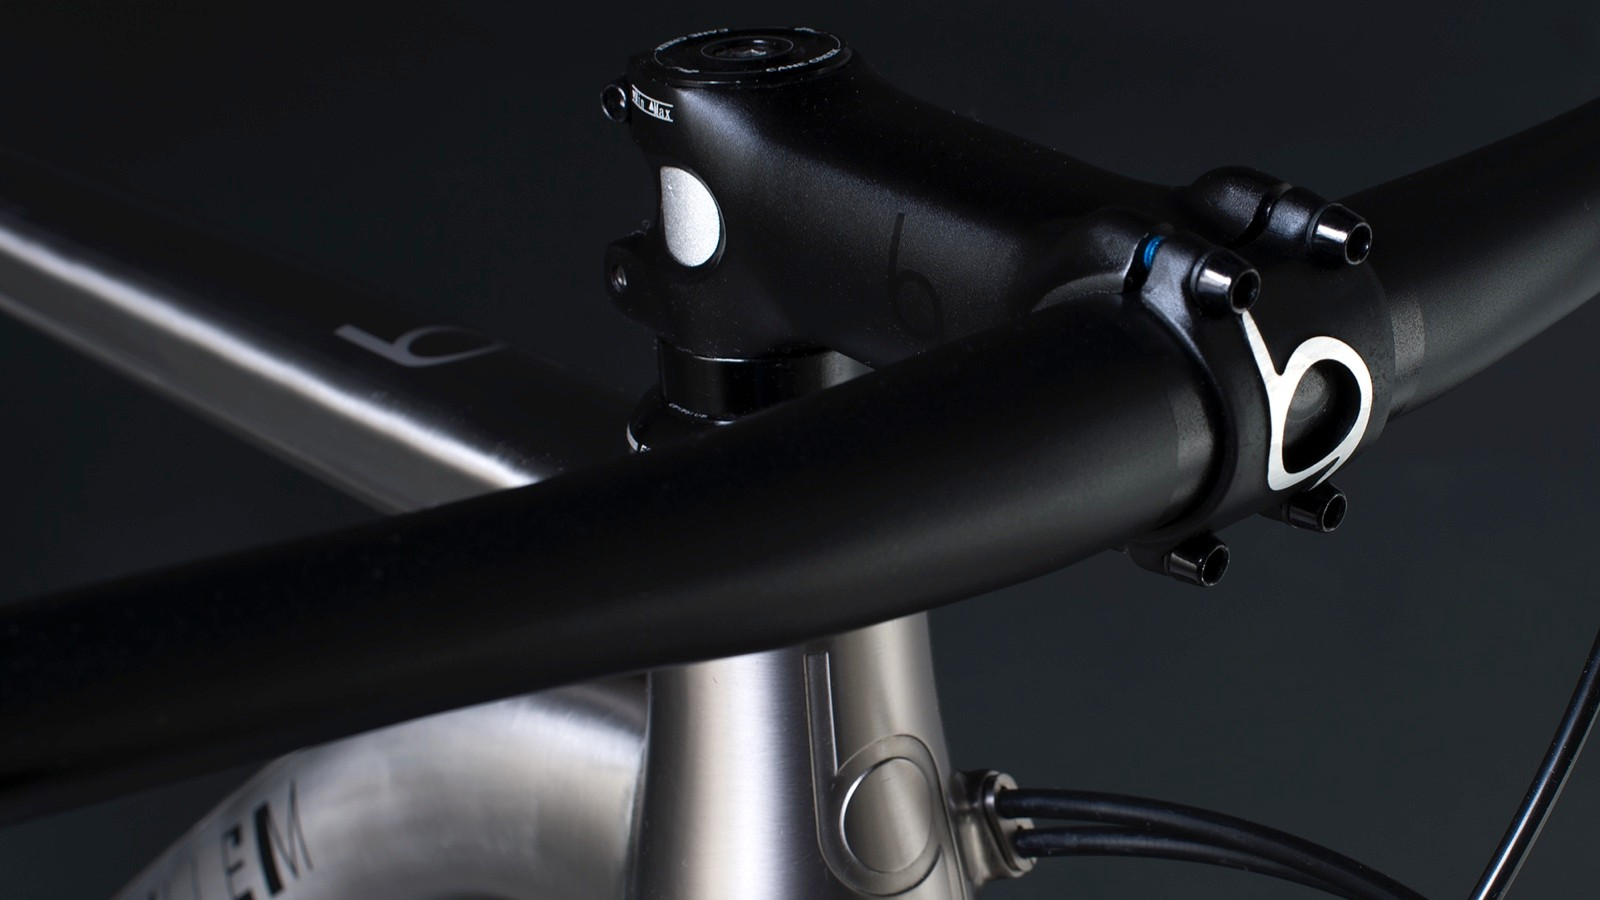 Note the neat internal routing on this J.Guillem Atalaya – compatible with both Di2 and mechanical shifting